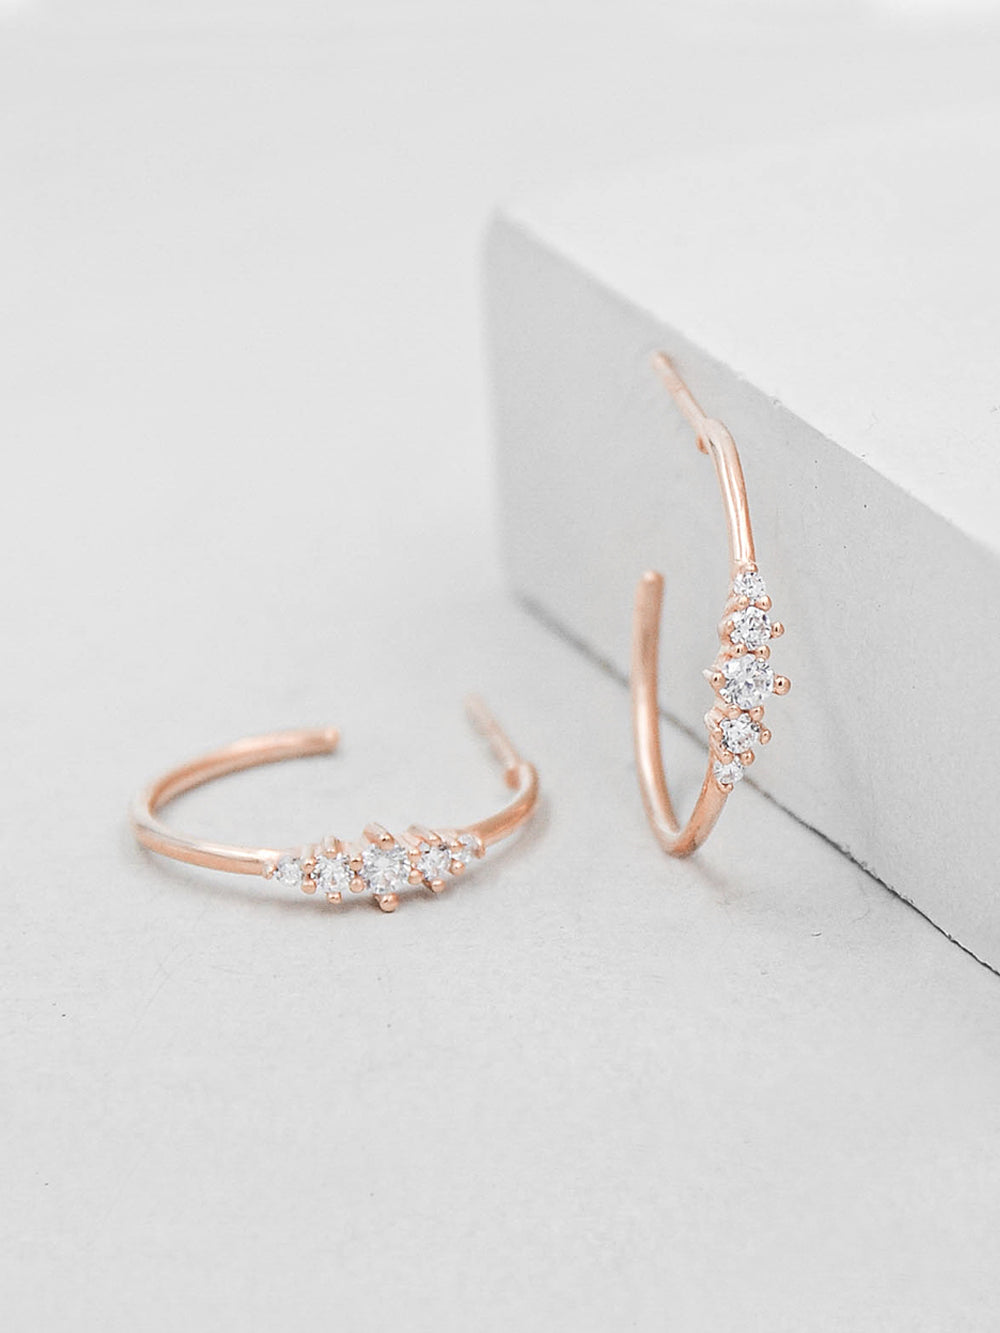 Rose Gold Plated Crown design CZ Hoops Dangling Earrings by The Faint Hearted Jewelry